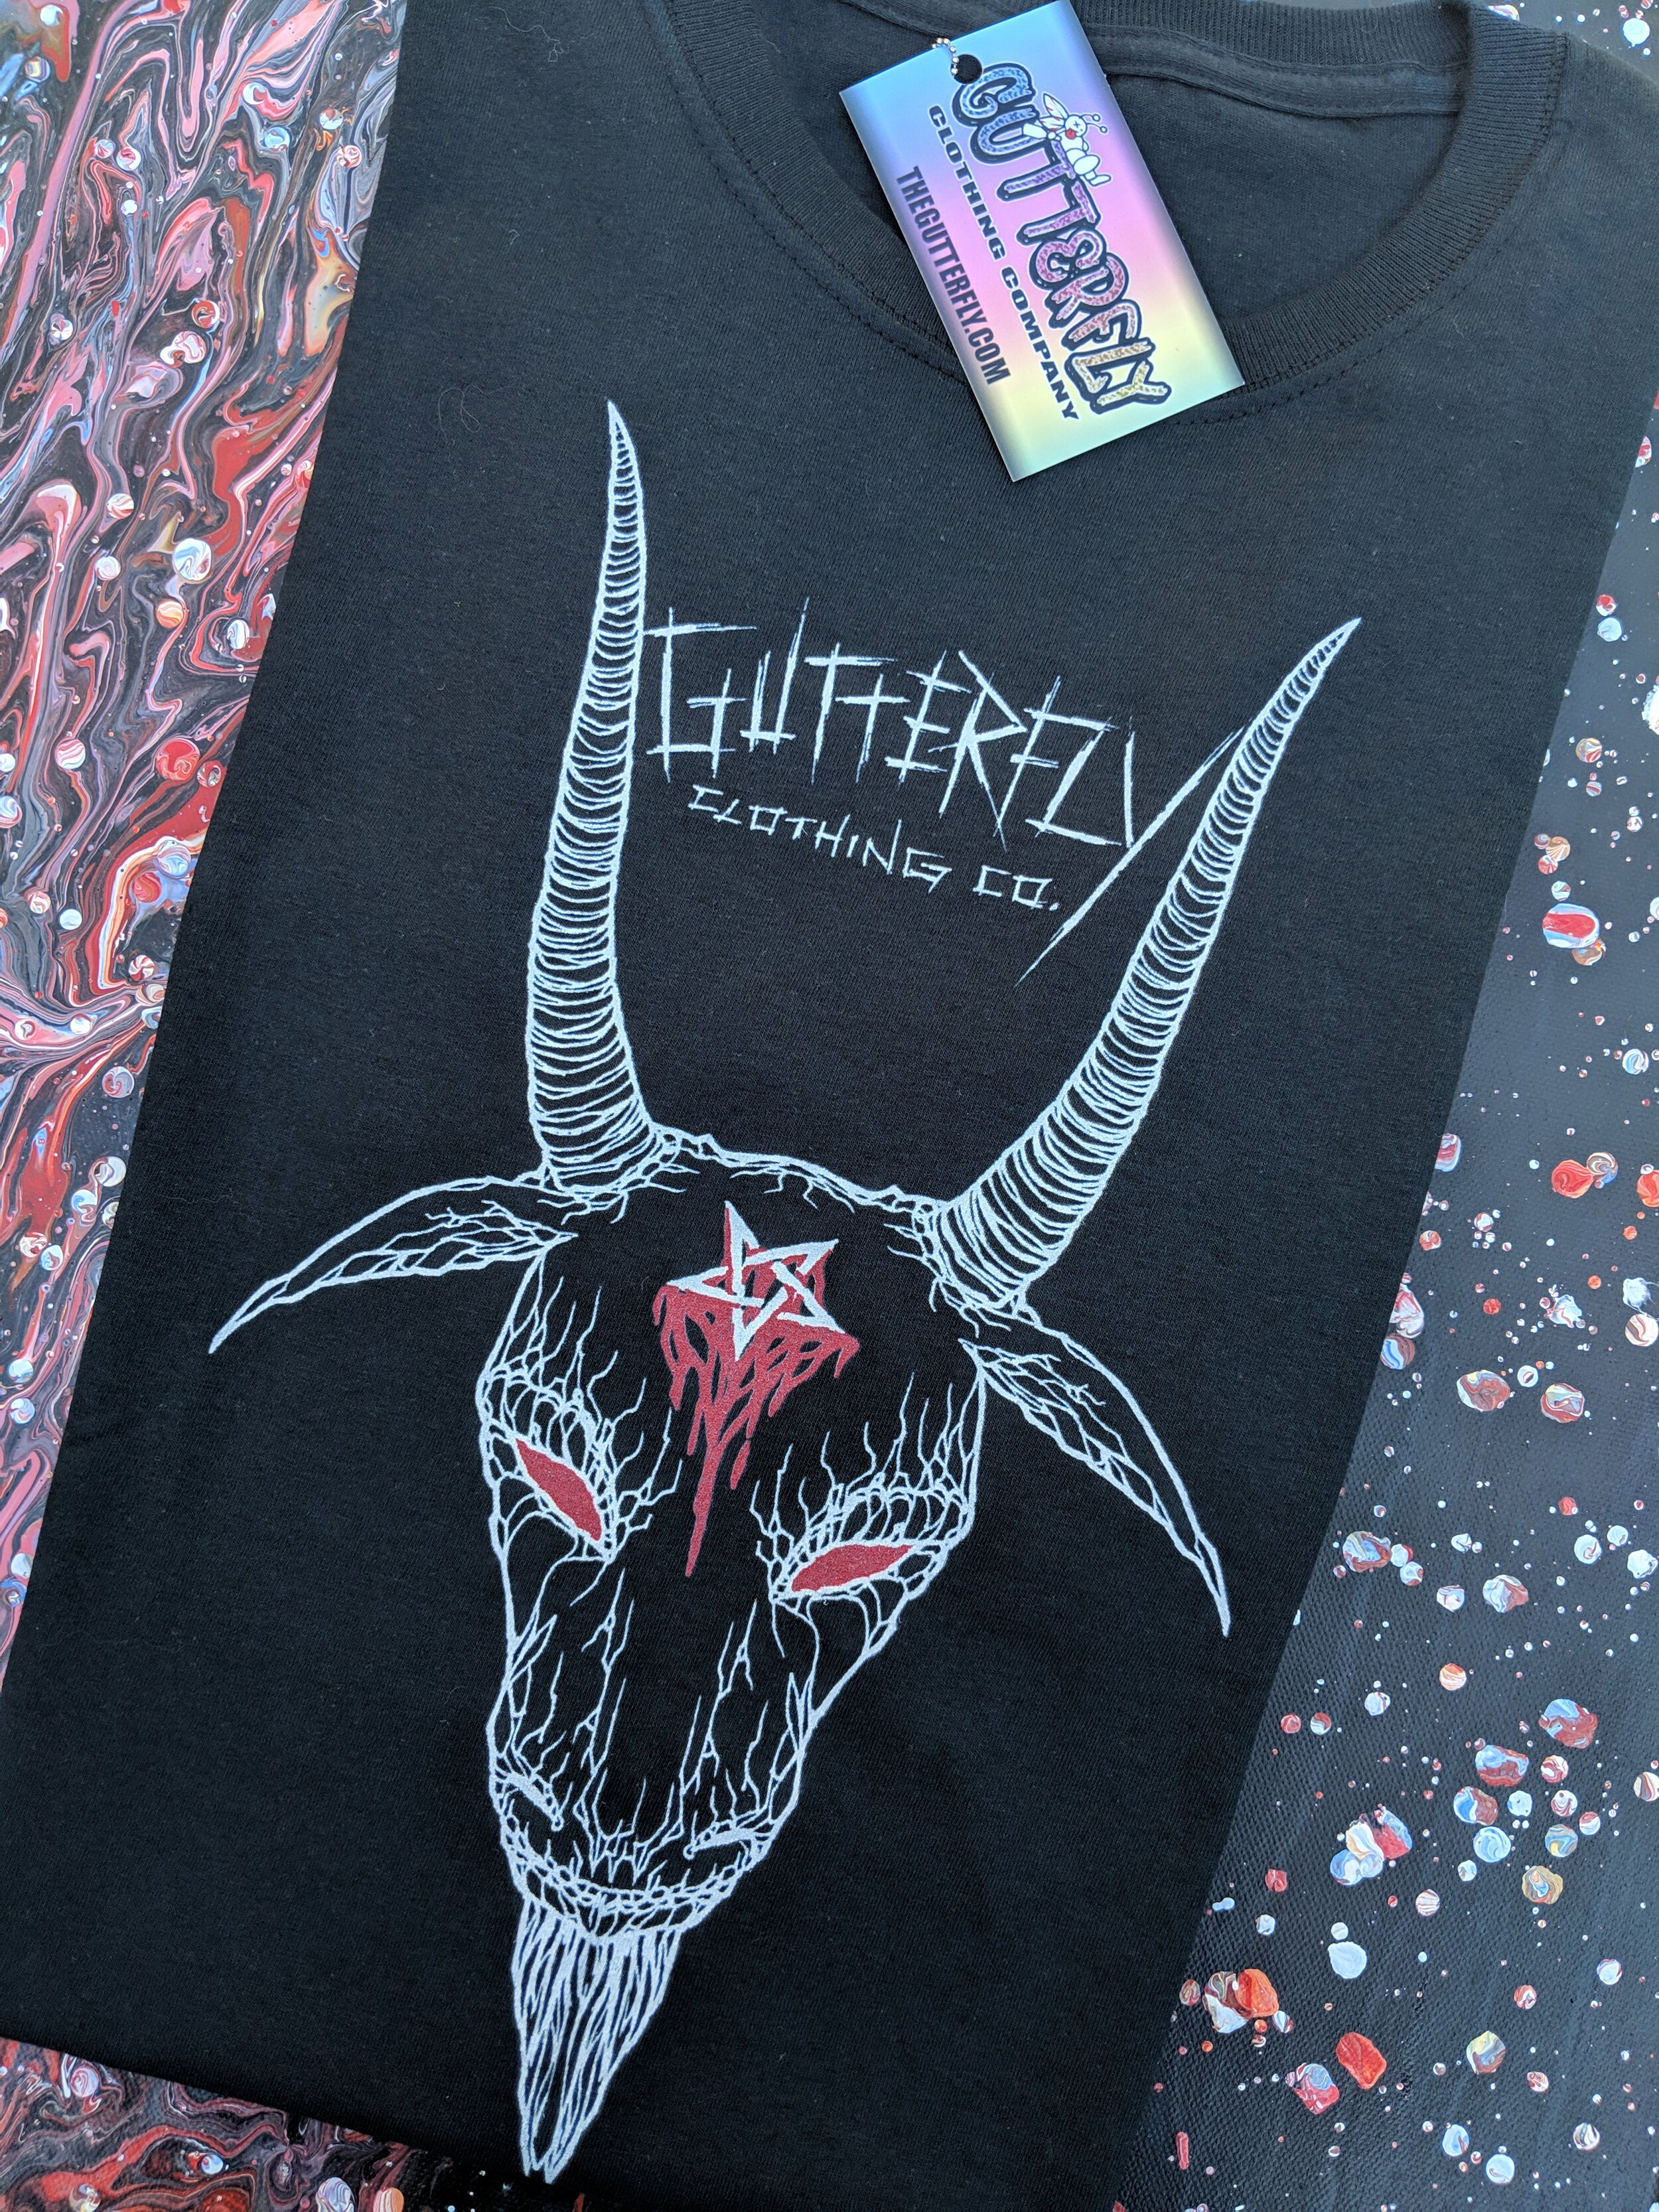 Gutterfly Clothing